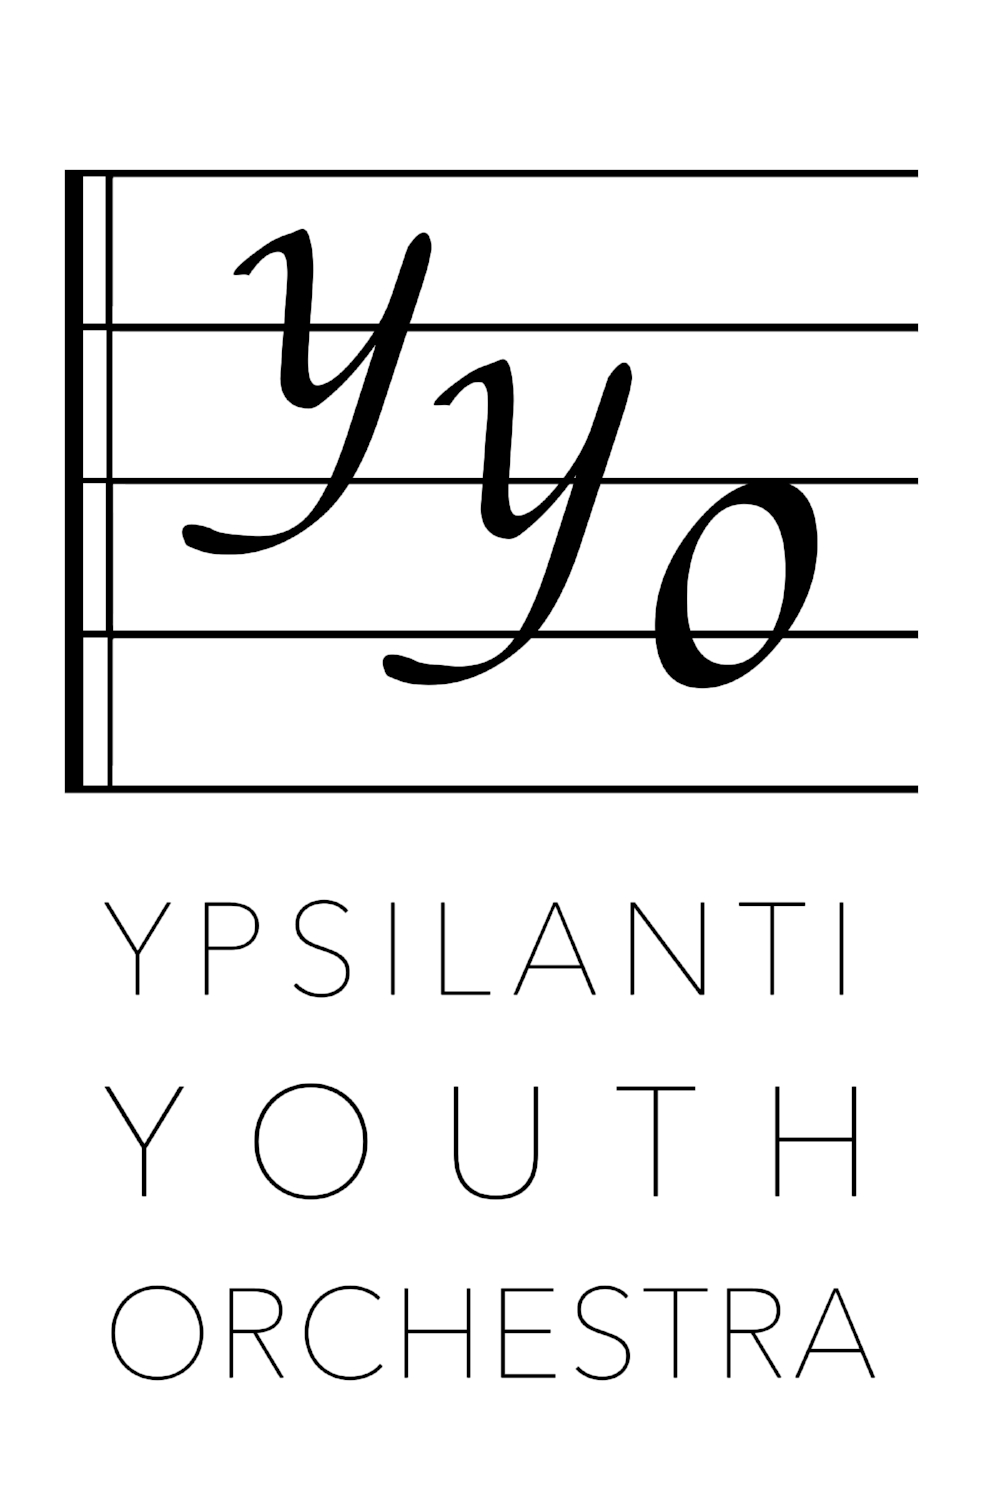 What we do - The Ypsilanti Youth Orchestra provides students the opportunity to make music in an atmosphere of creation, motivation, cooperation, and friendship, while developing team-building and communication skills in a safe and supportive setting, and serves more than two hundred youth of diverse backgrounds and socioeconomic status by remaining tuition-free for students and families.It's all for the childrenMost professional and amateur musicians will tell you that playing in their school orchestra or band was one of the highlights of their youth. Playing in a group dedicated to music creates an atmosphere of warmth, of structure, of challenge, and of creativity. After all, an orchestra is much more than a group of players doing something together. Knowing that each person depends on every other person to do the right thing at the right time, and if they do, something much larger than themselves fills the room and creates magic.